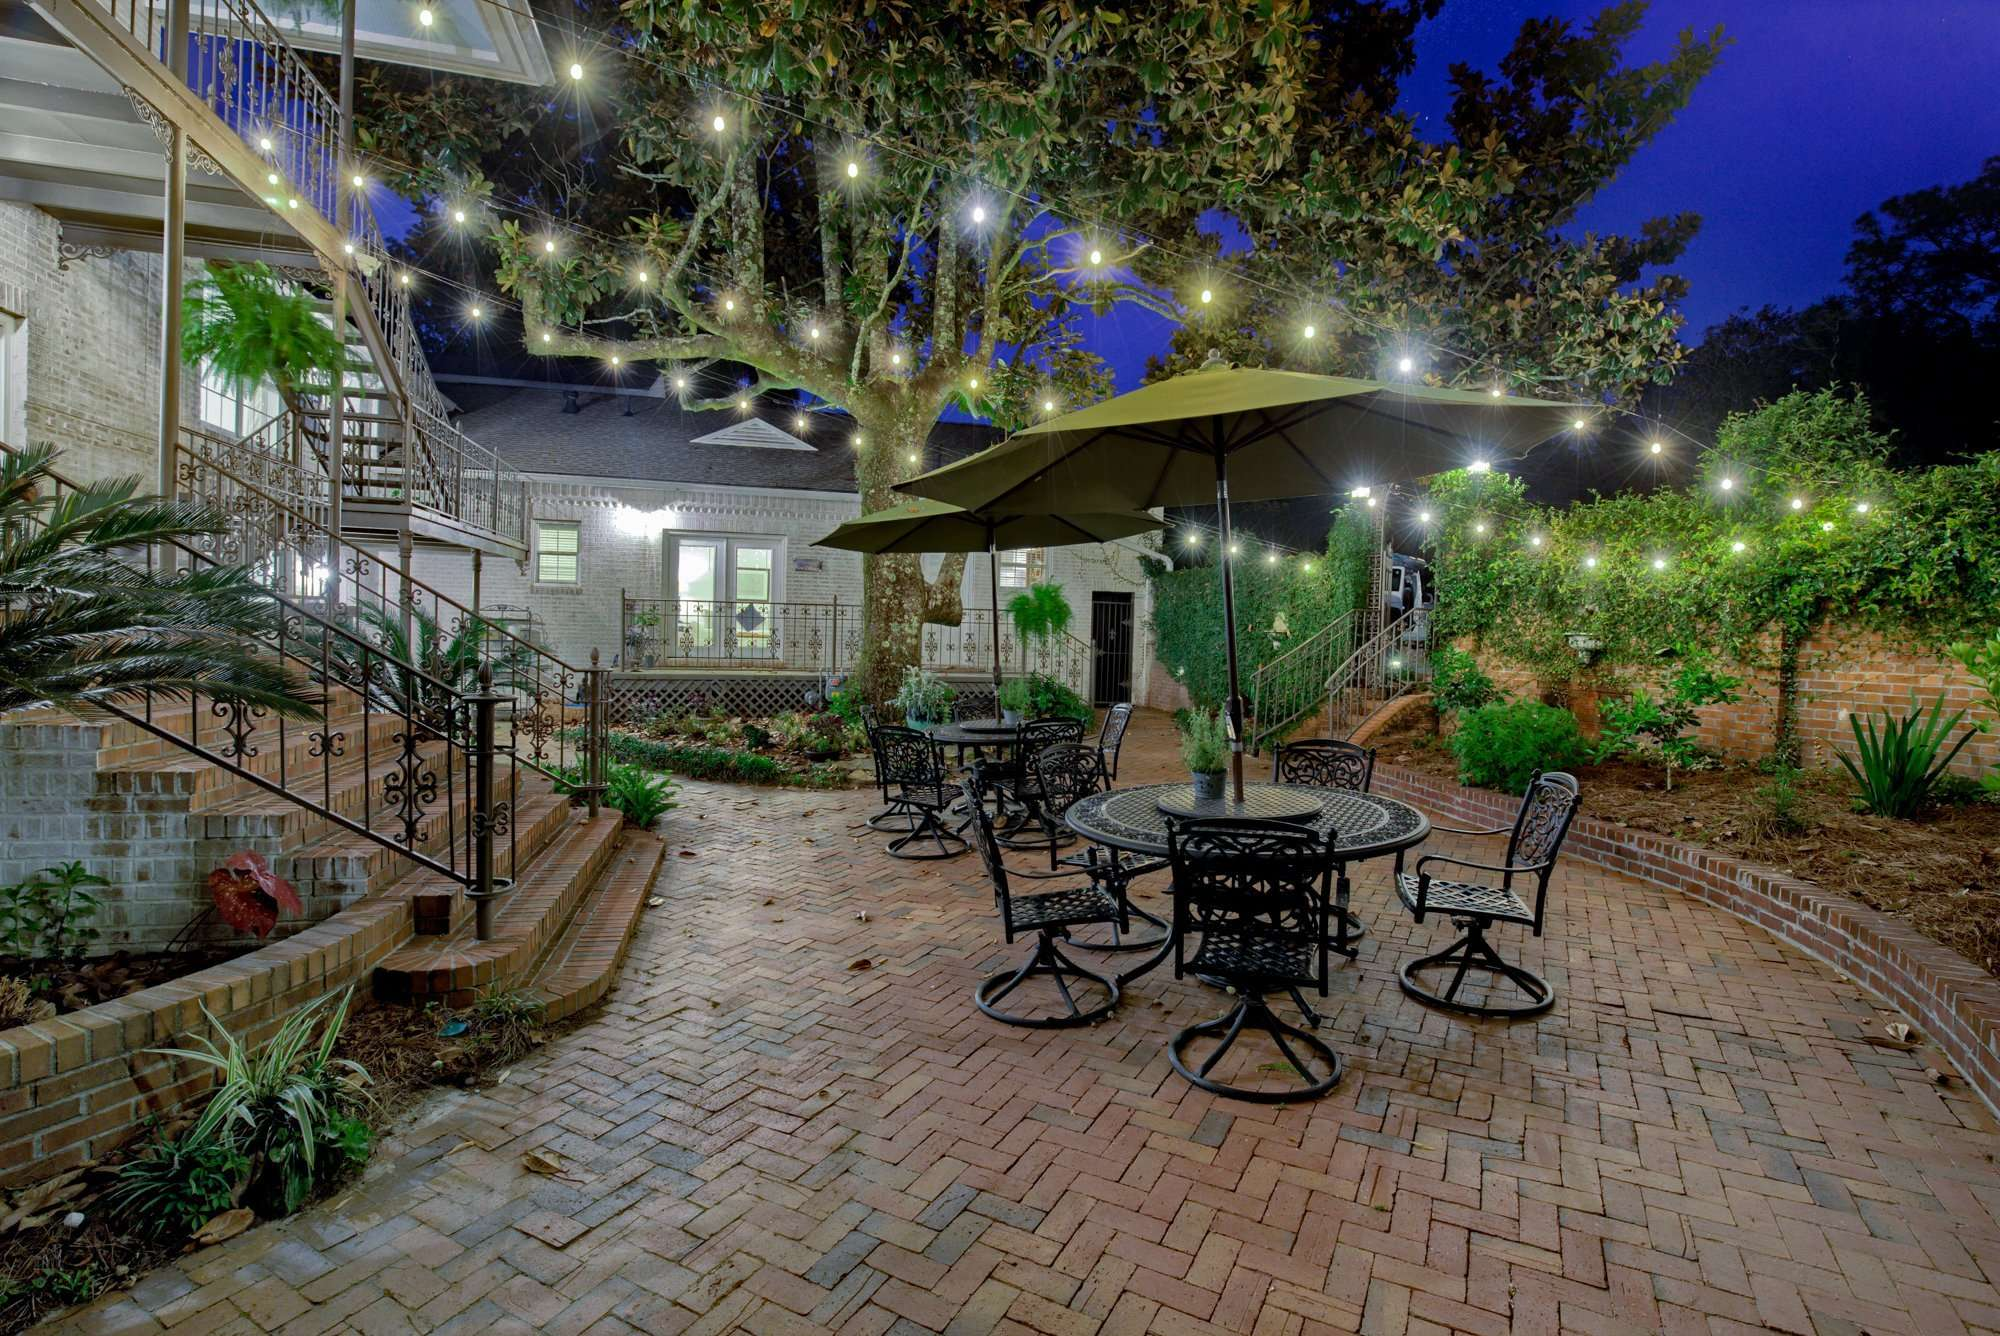 Jubilee Suites in Fairhope, AL Courtyard Lights